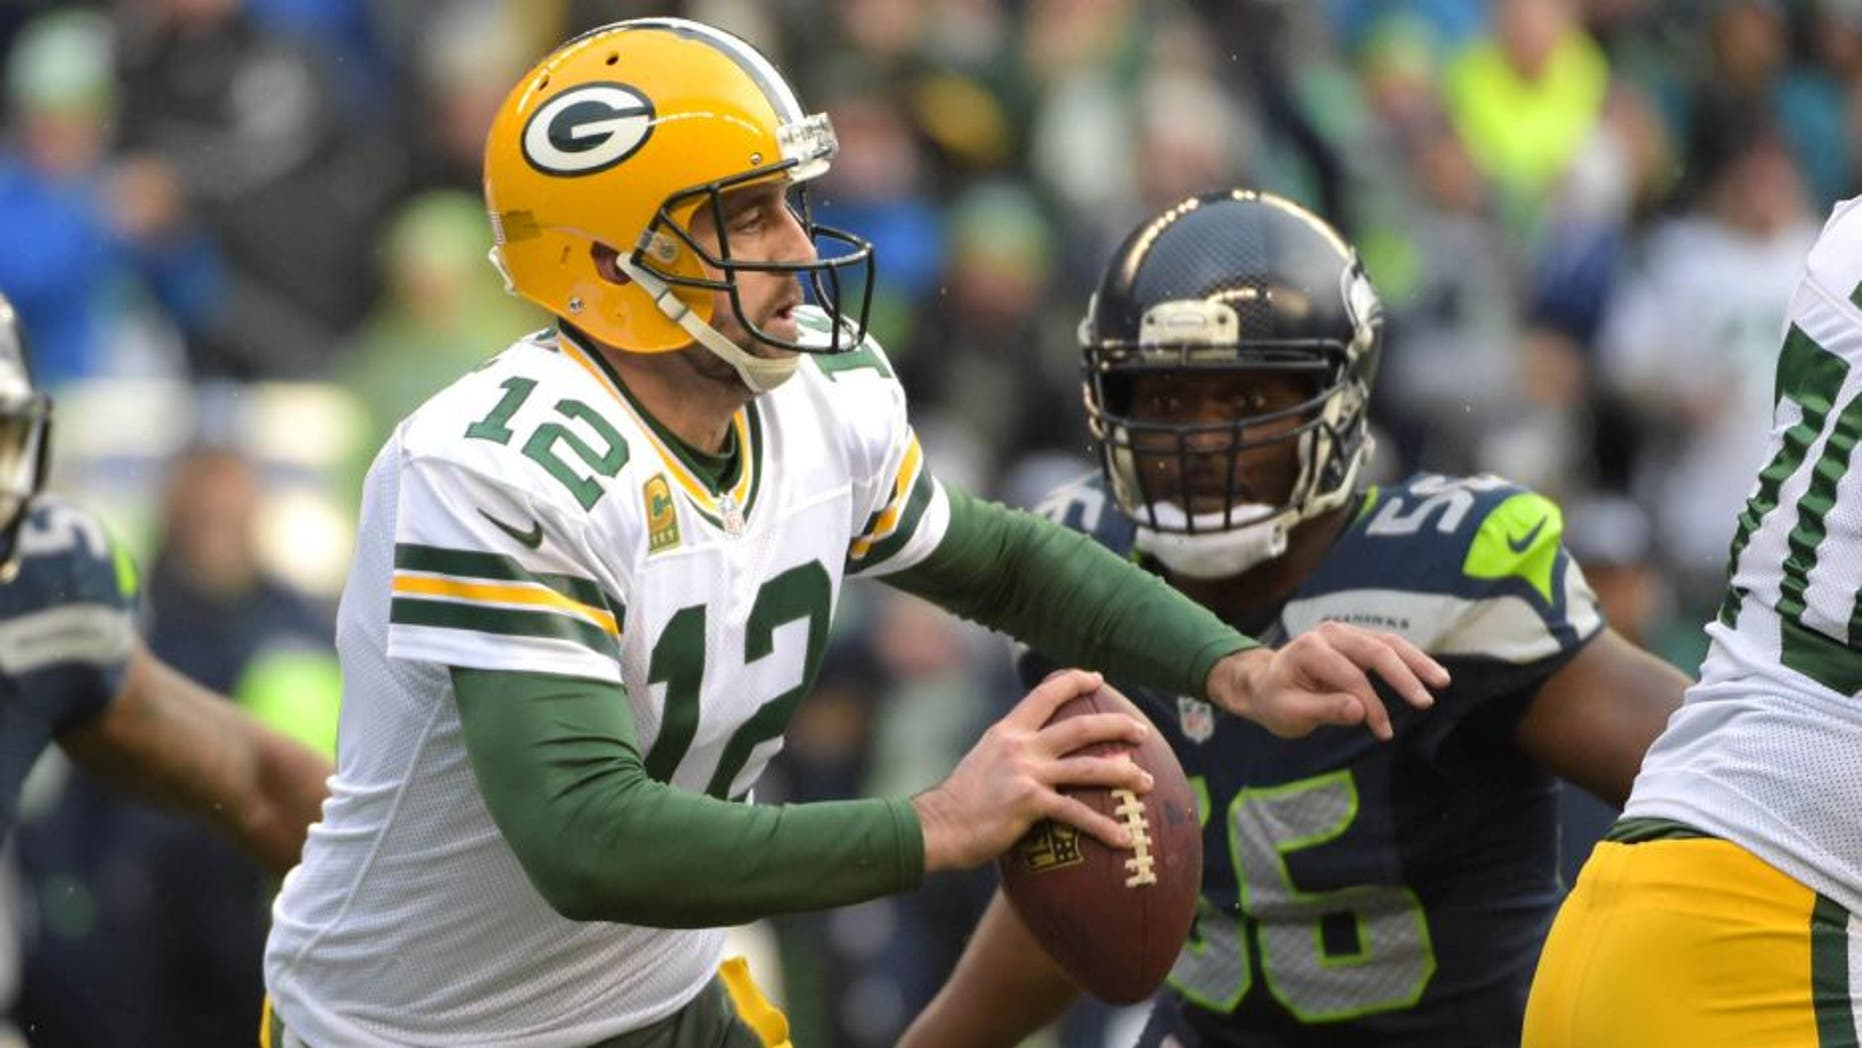 Jan 18, 2015; Seattle, WA, USA; Green Bay Packers quarterback Aaron Rodgers (12) looks to throw the ball against the Seattle Seahawks during the fourth quarter in the NFC Championship Game at CenturyLink Field. Mandatory Credit: Kirby Lee-USA TODAY Sports